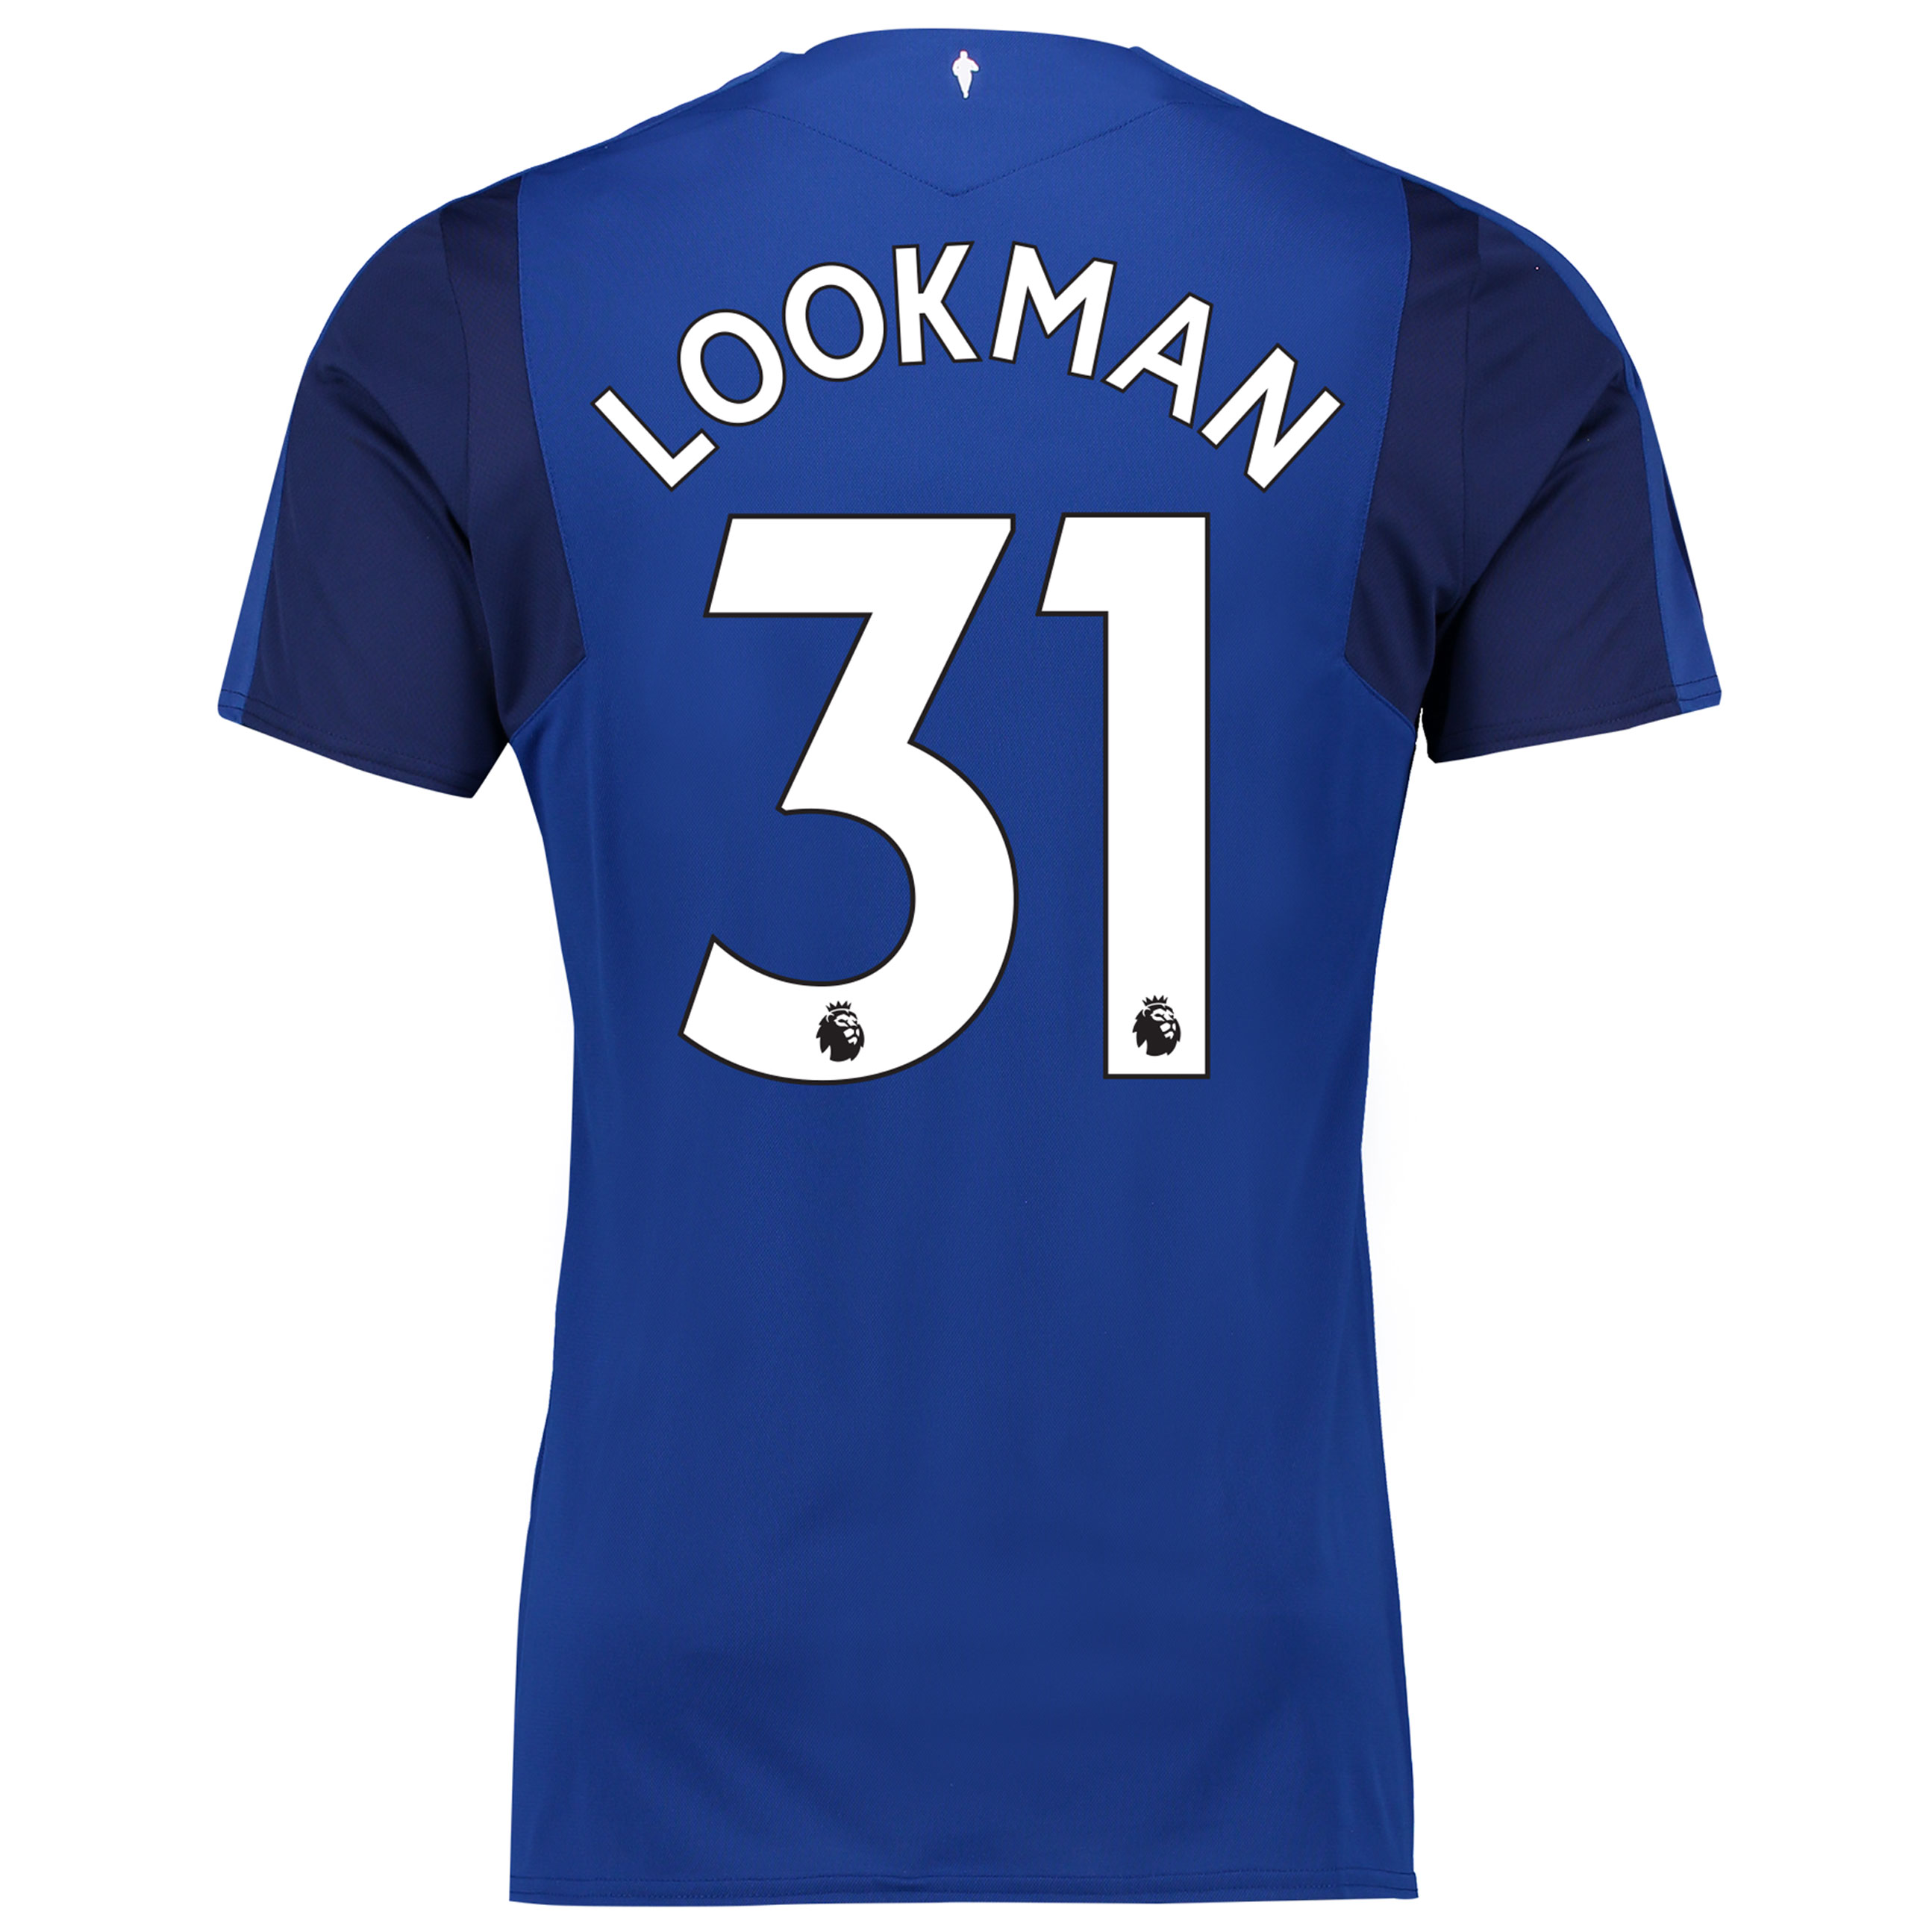 Everton Home Shirt 2017/18 - Junior with Lookman 31 printing